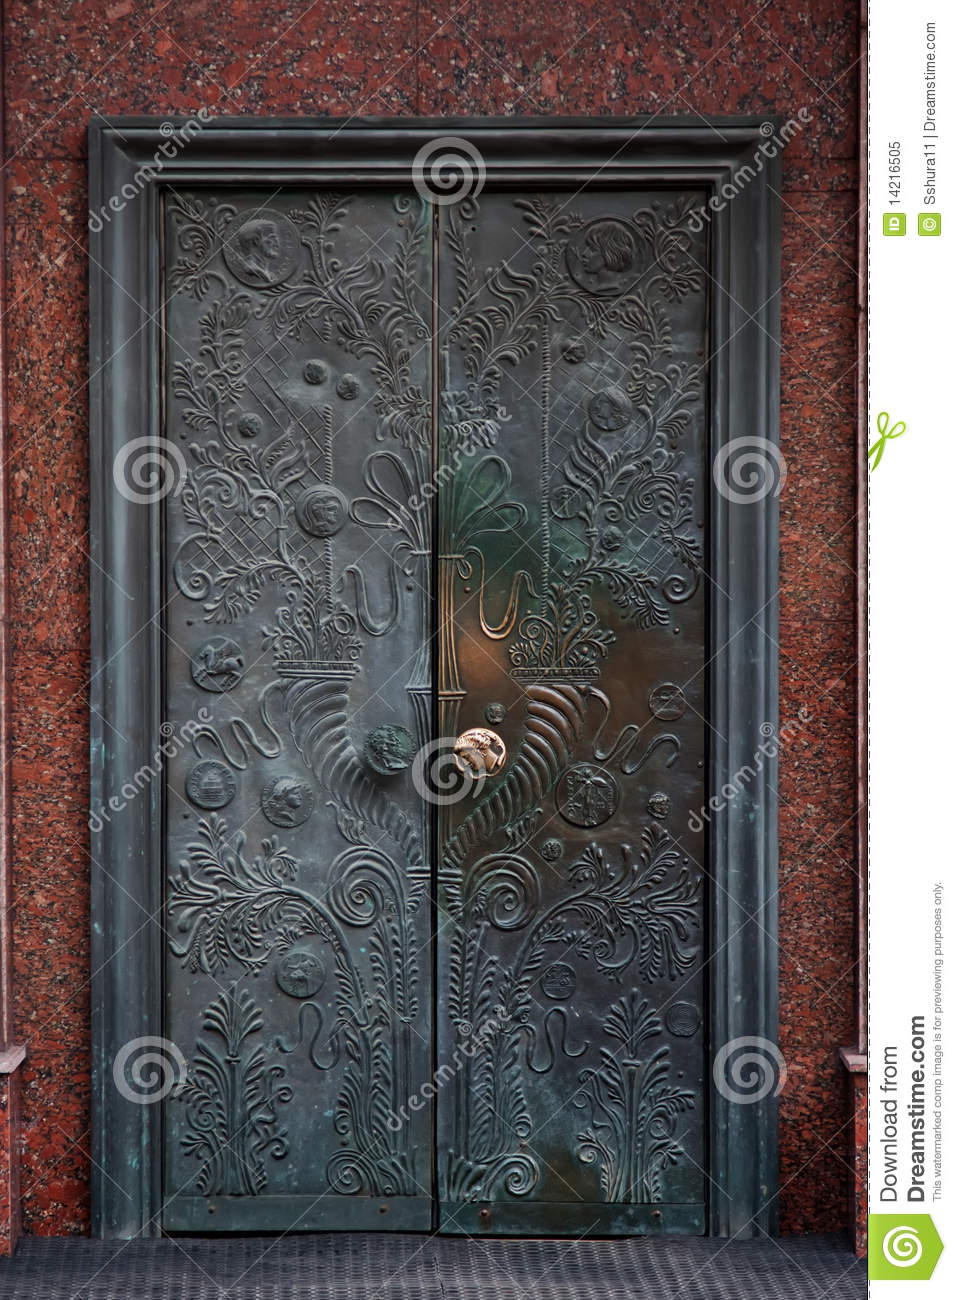 Old retro bronze door & Old retro bronze door stock image. Image of construction - 14216505